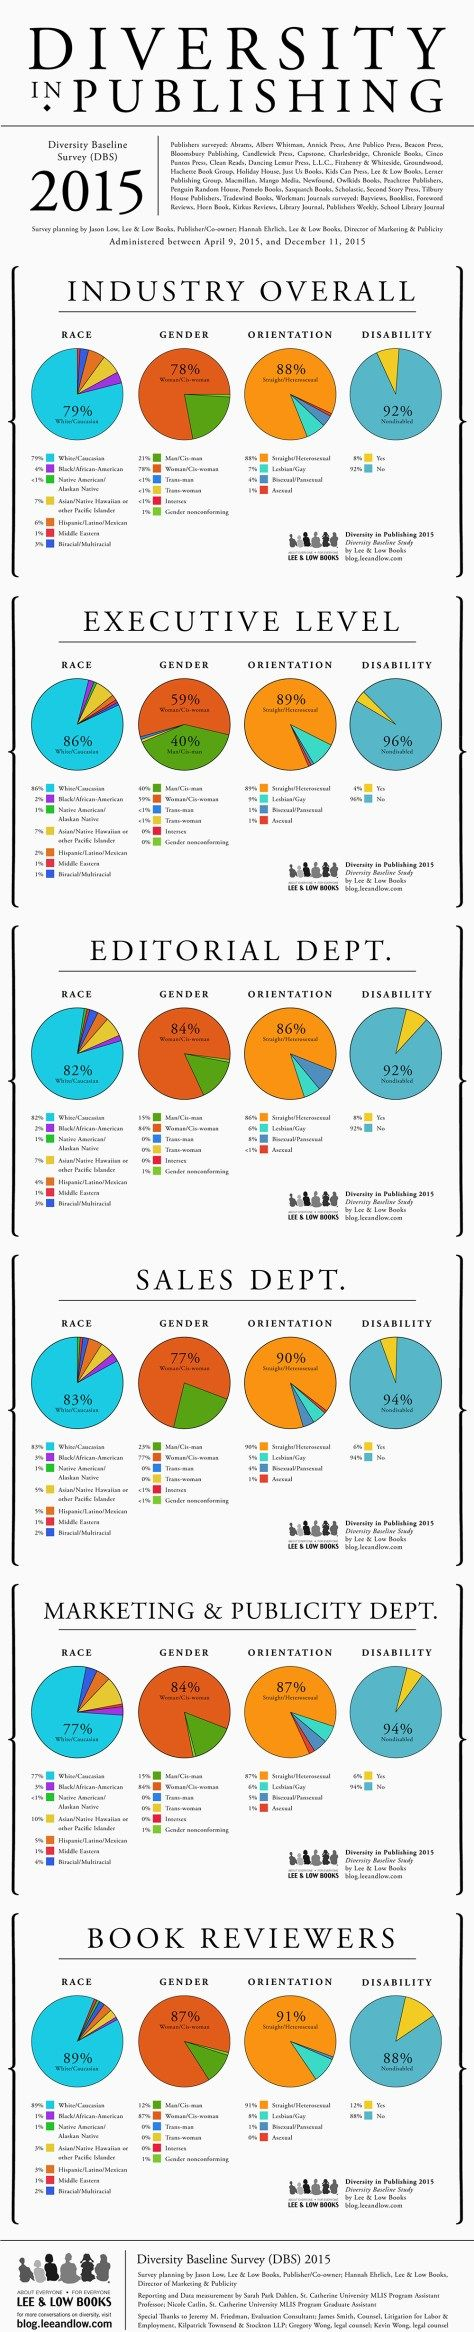 This data, collected by Lee & Low Books (an American publishing company dedicated to multicultural representation), shows that through every single level of publishing, whites take the majority. Even at the smallest level, in Marketing and Publicity, whites still make up 77%. #findings